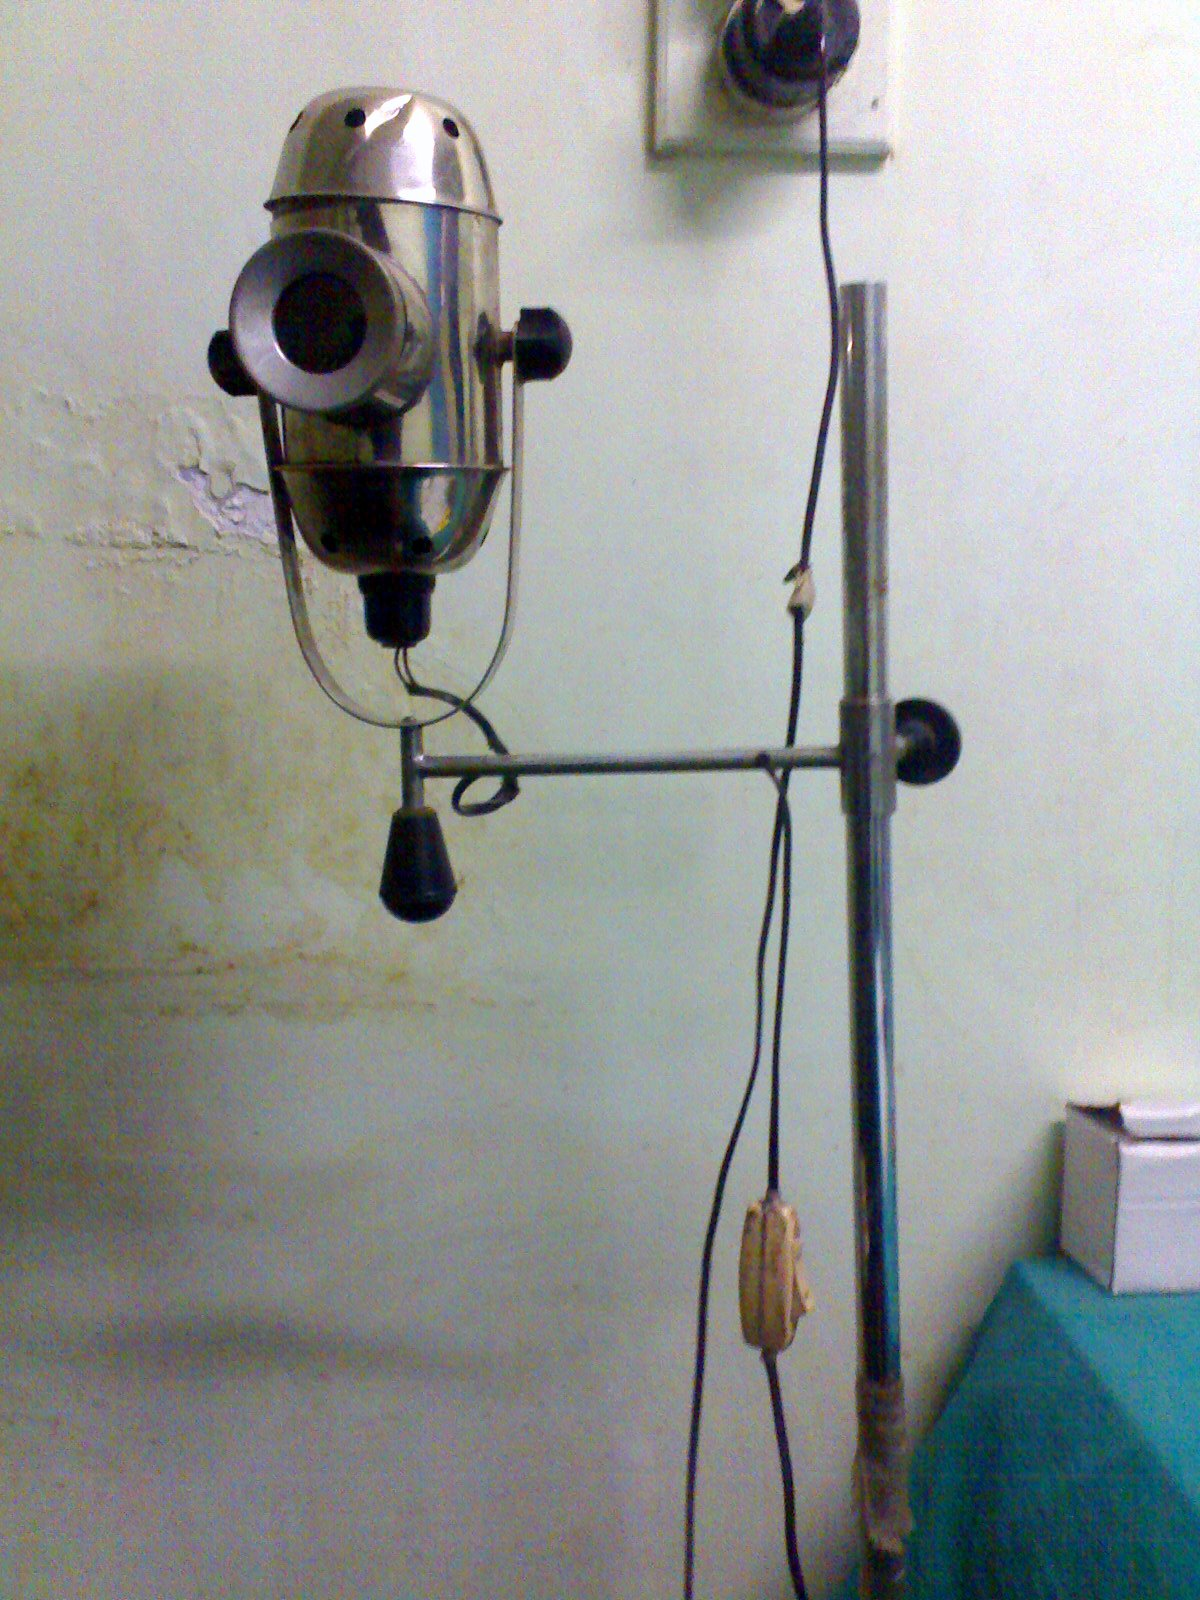 File:ENT Instruments Bull's Eye Lamp.jpg - Wikimedia Commons